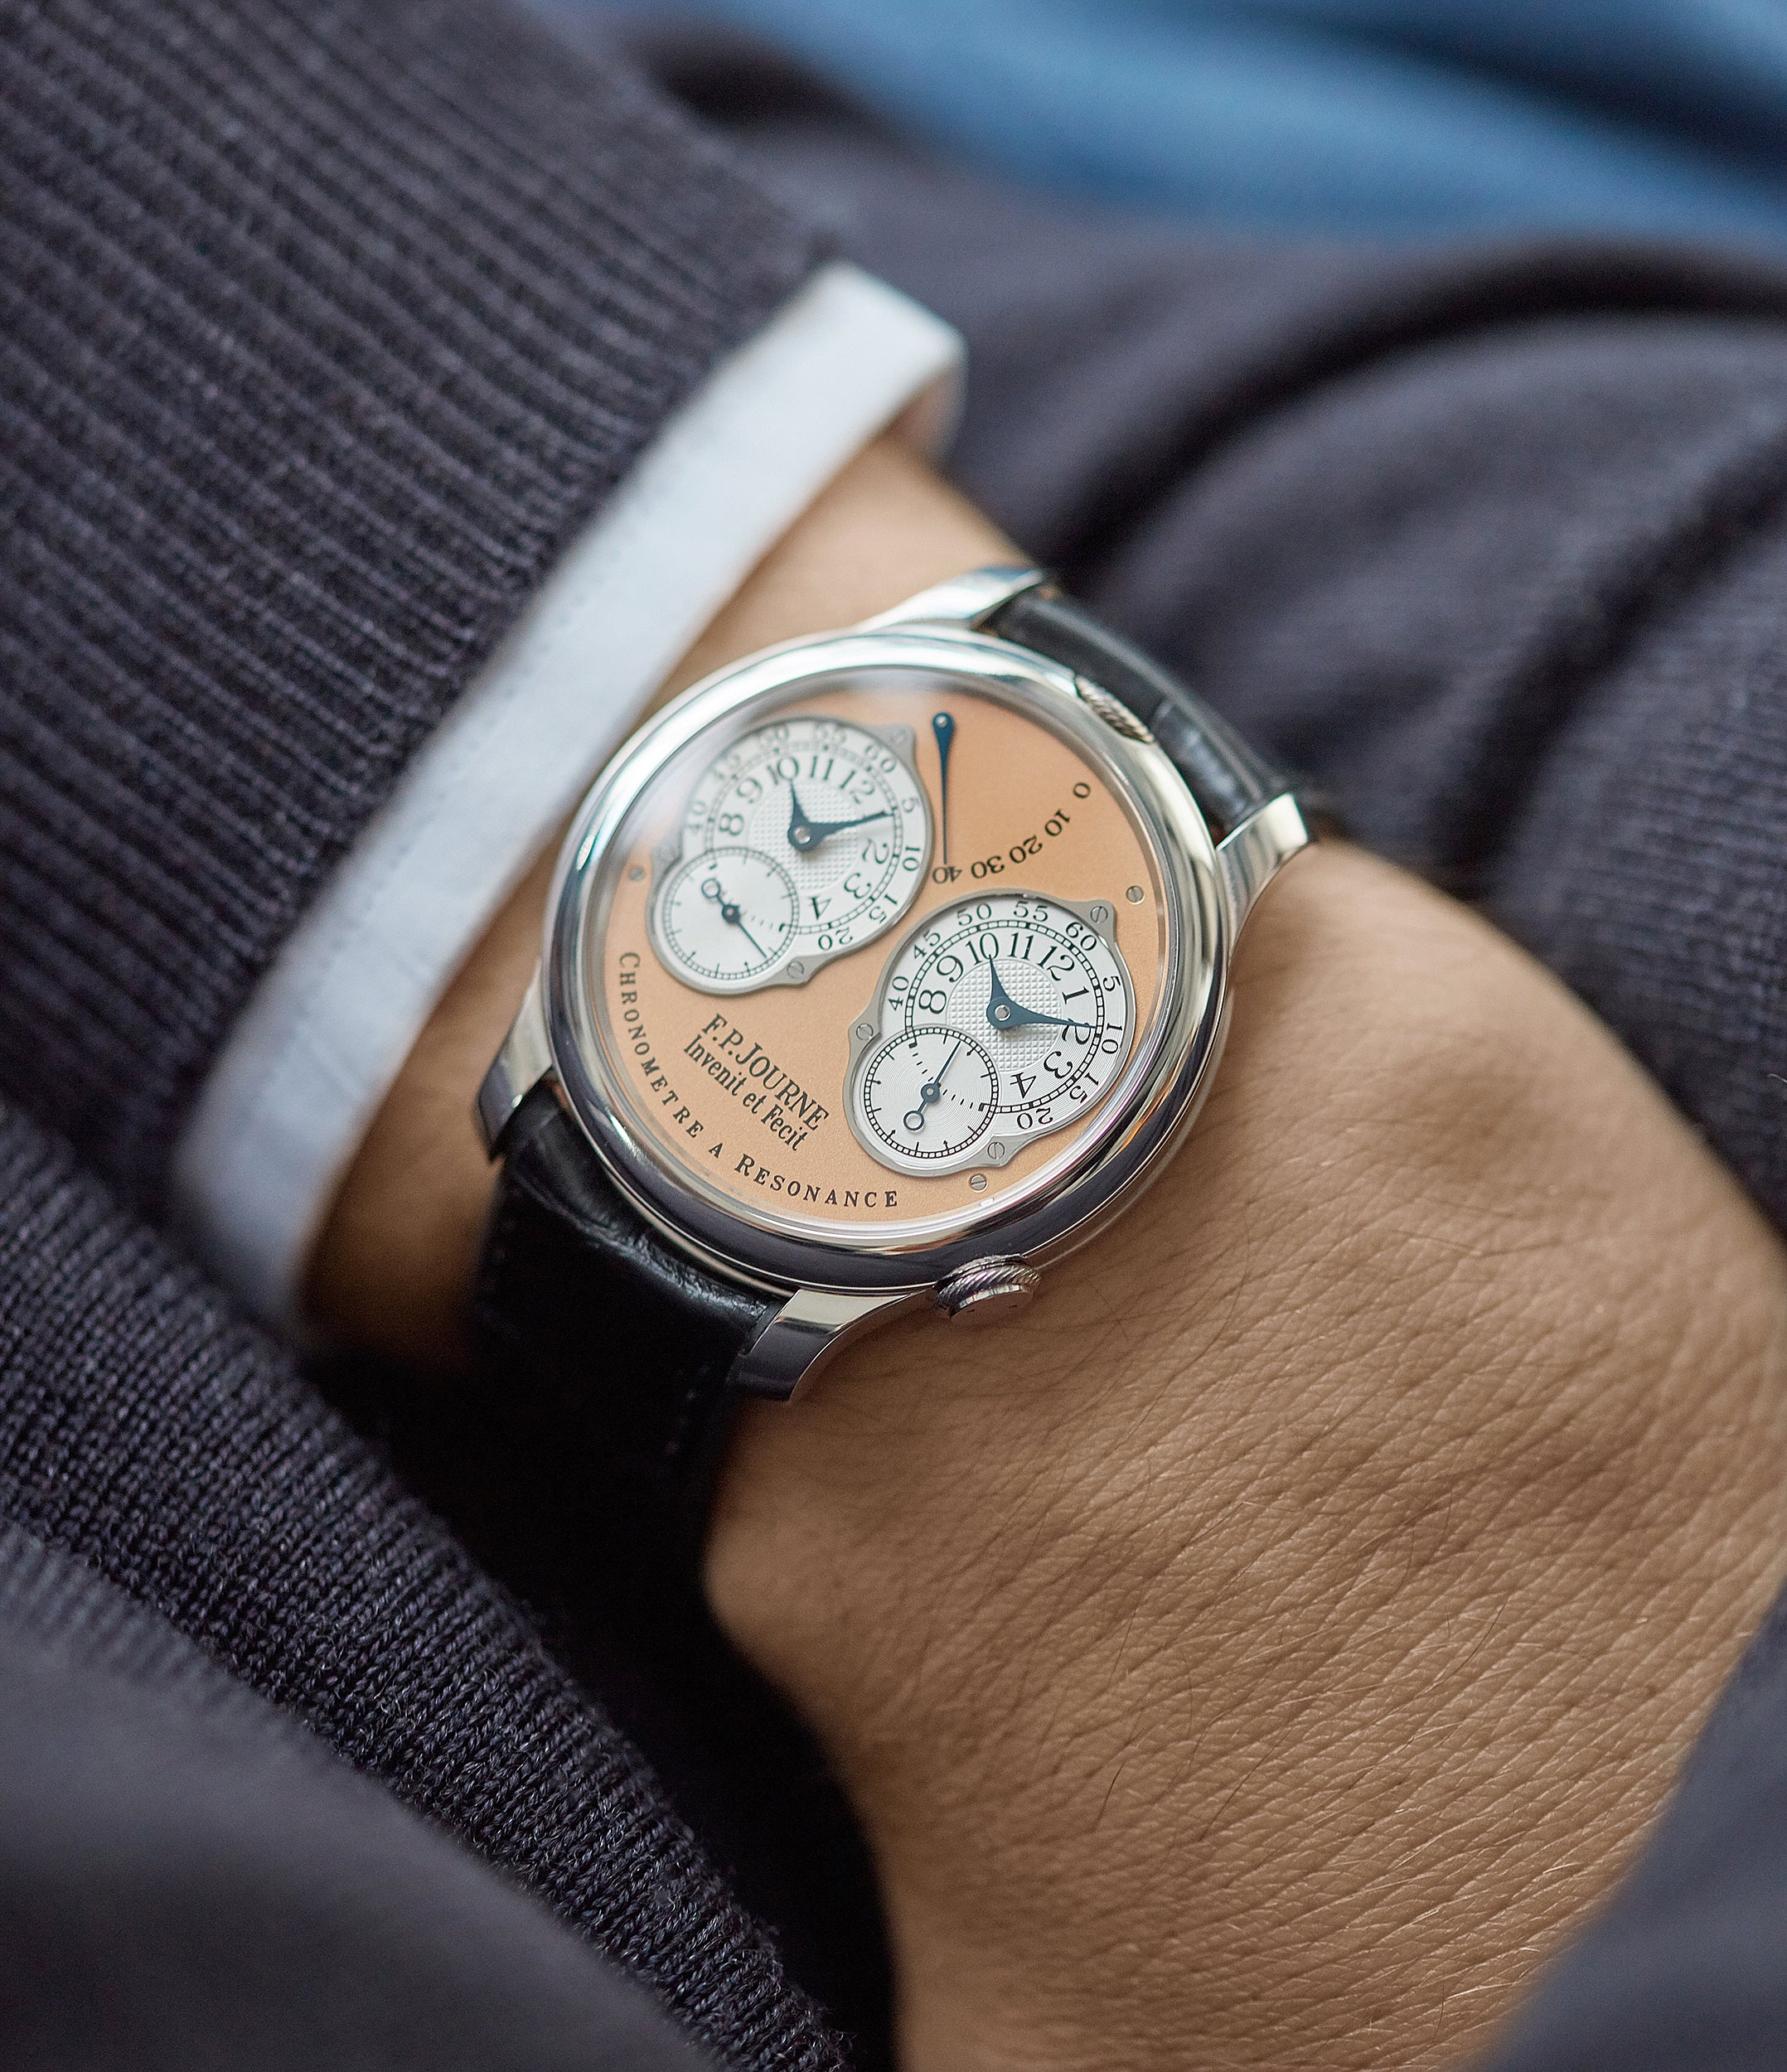 on the wrist F. P. Journe Chronometre a Resonance platinum watch gold movement for sale online at A Collected Man London Uk specialist of independent watchmakers